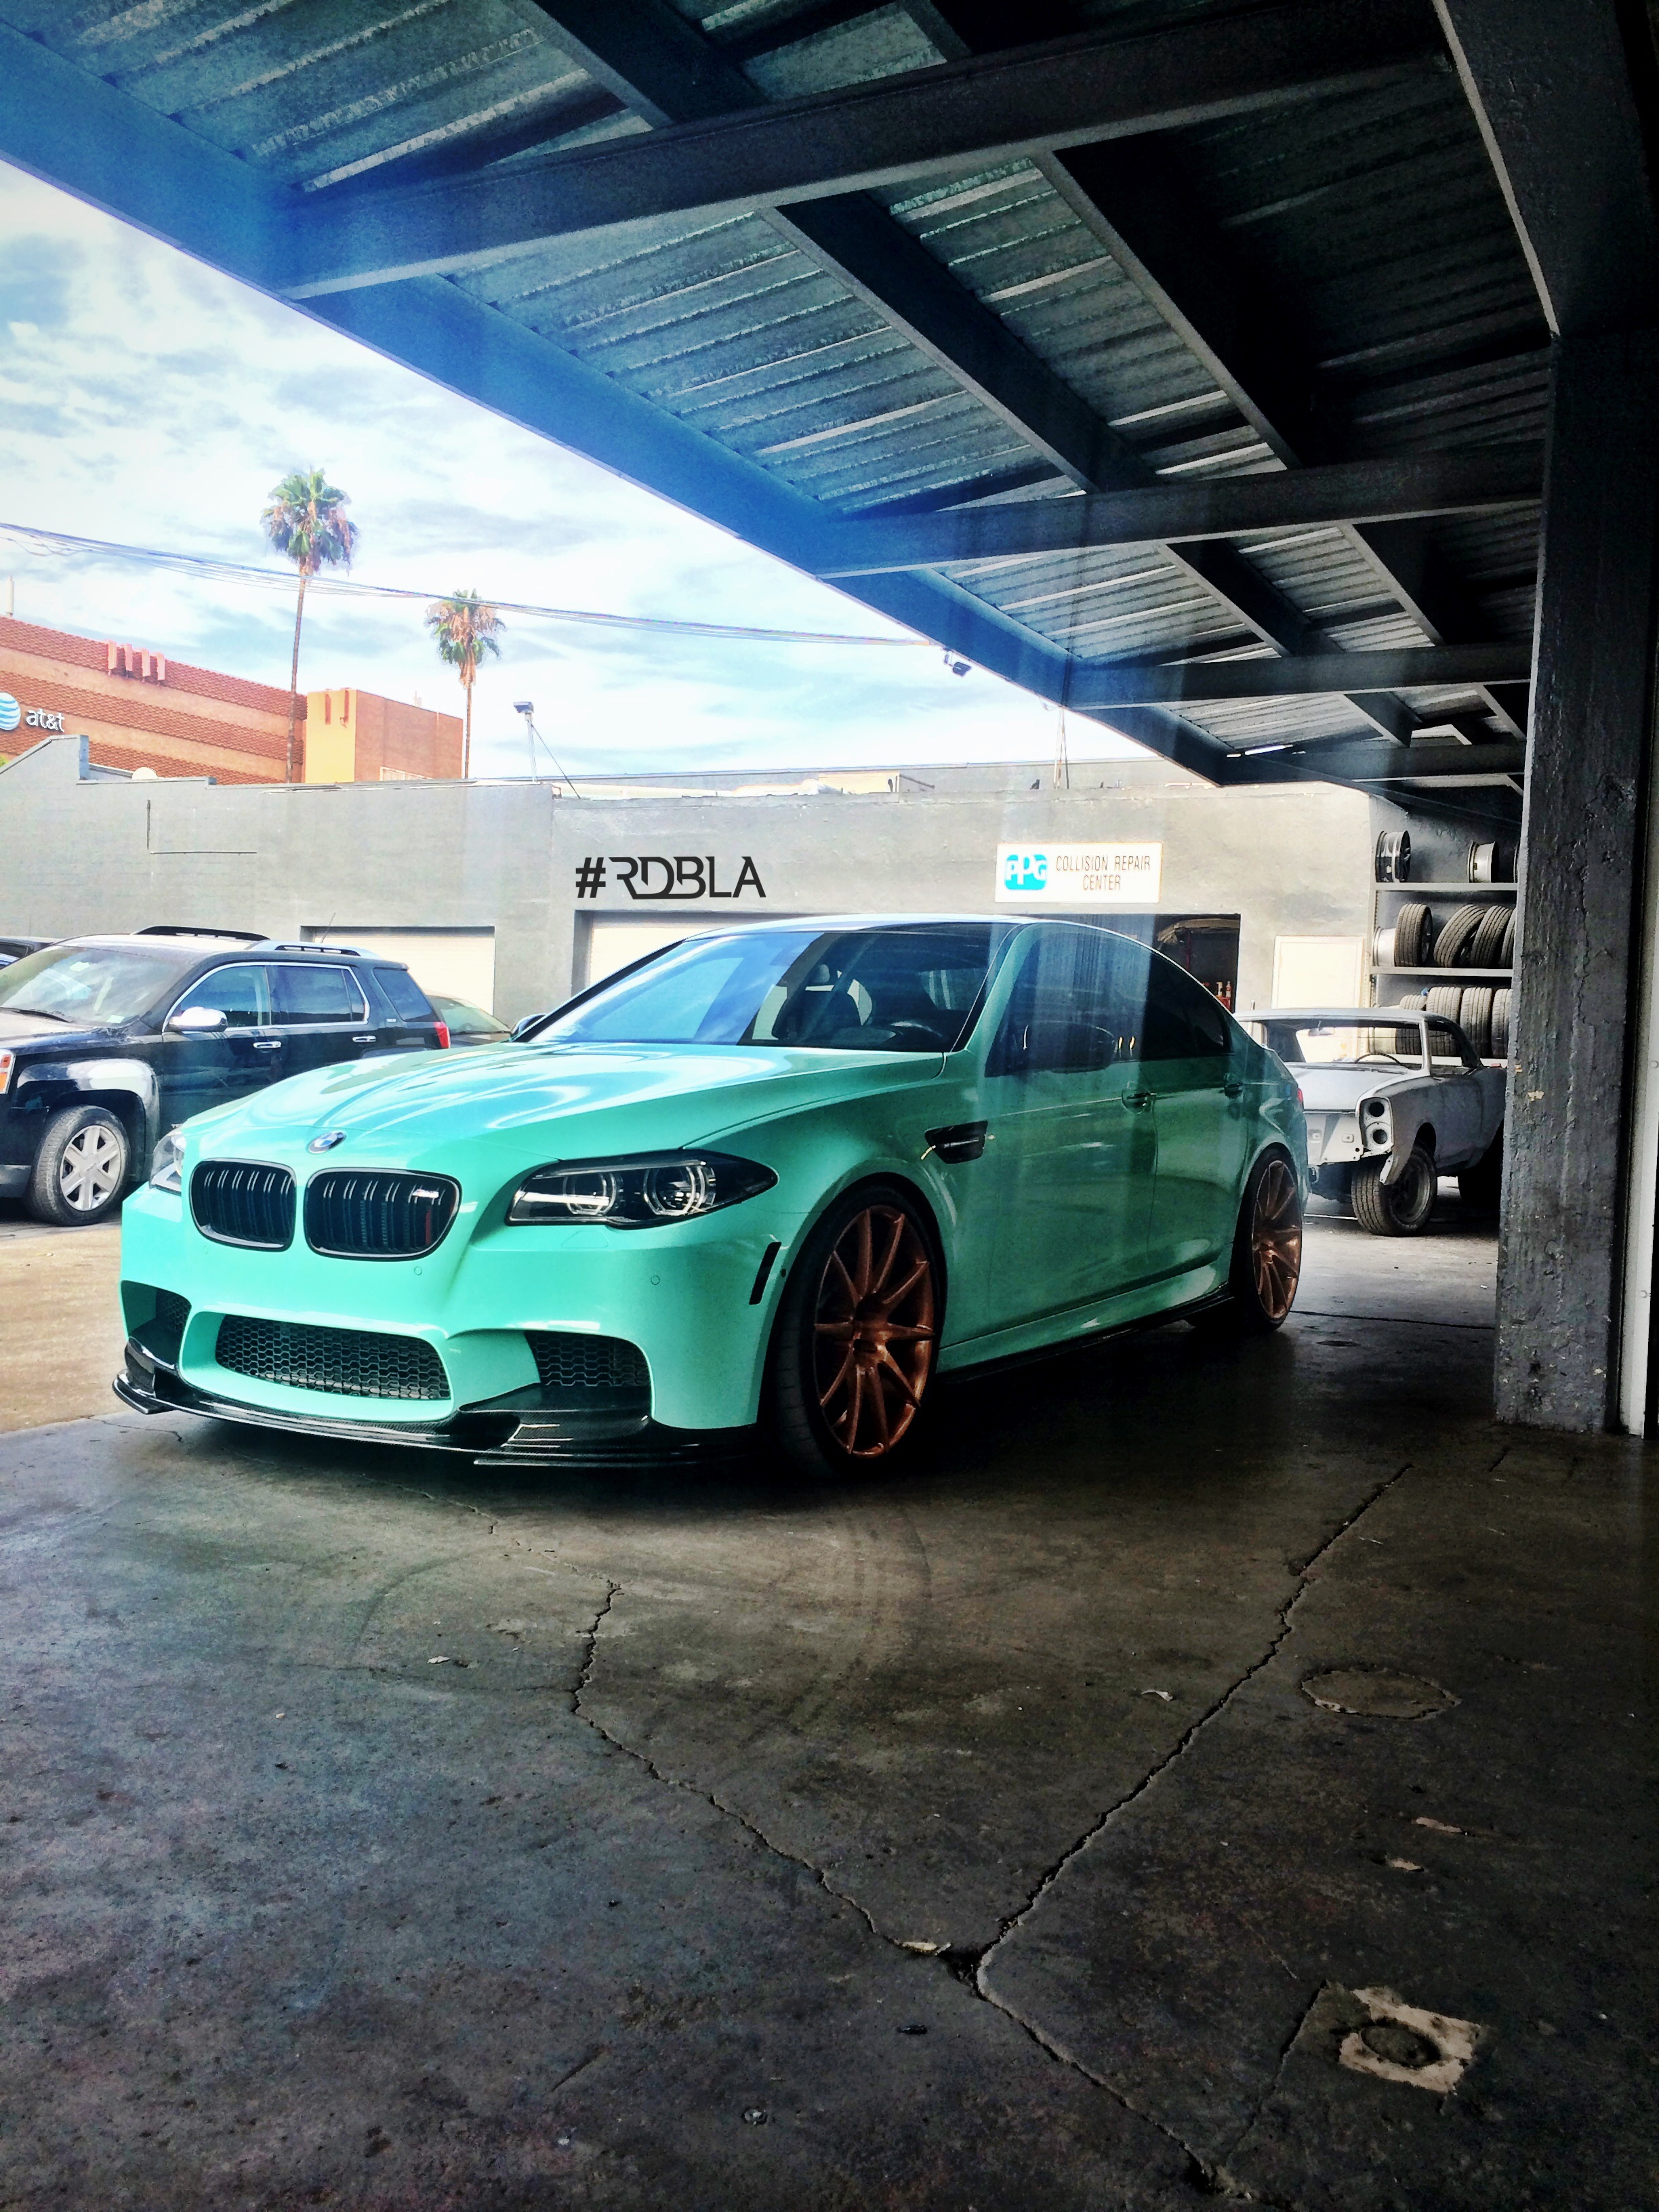 Rdb La Squeezed 660 Hp From This Wicked Bmw M5 Autoevolution